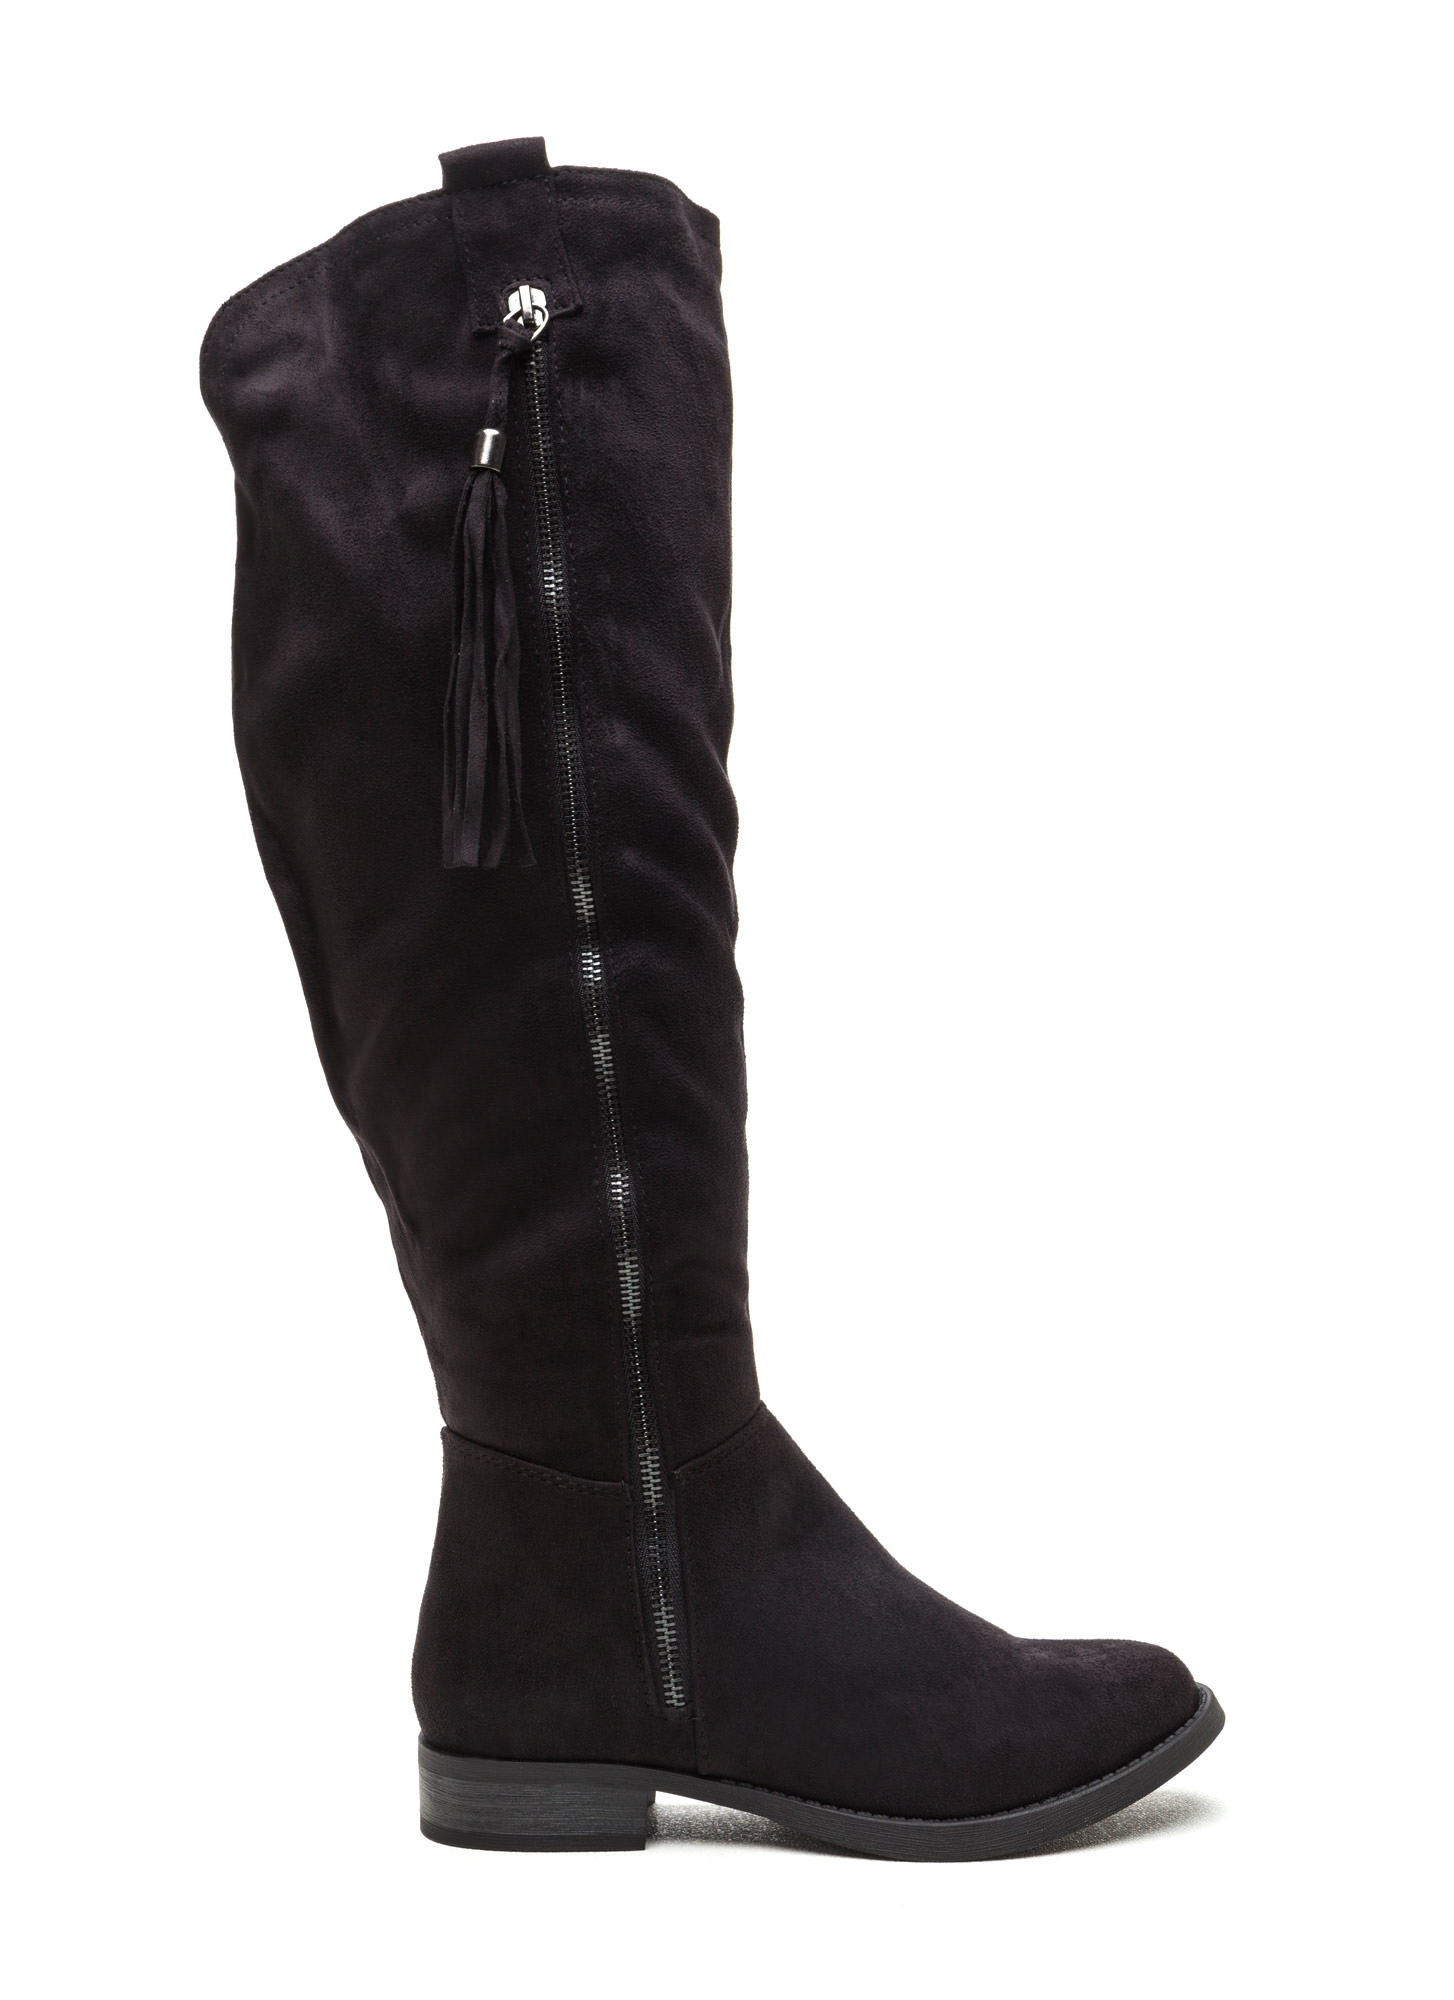 Time For Tassels Faux Suede Boots BLACK